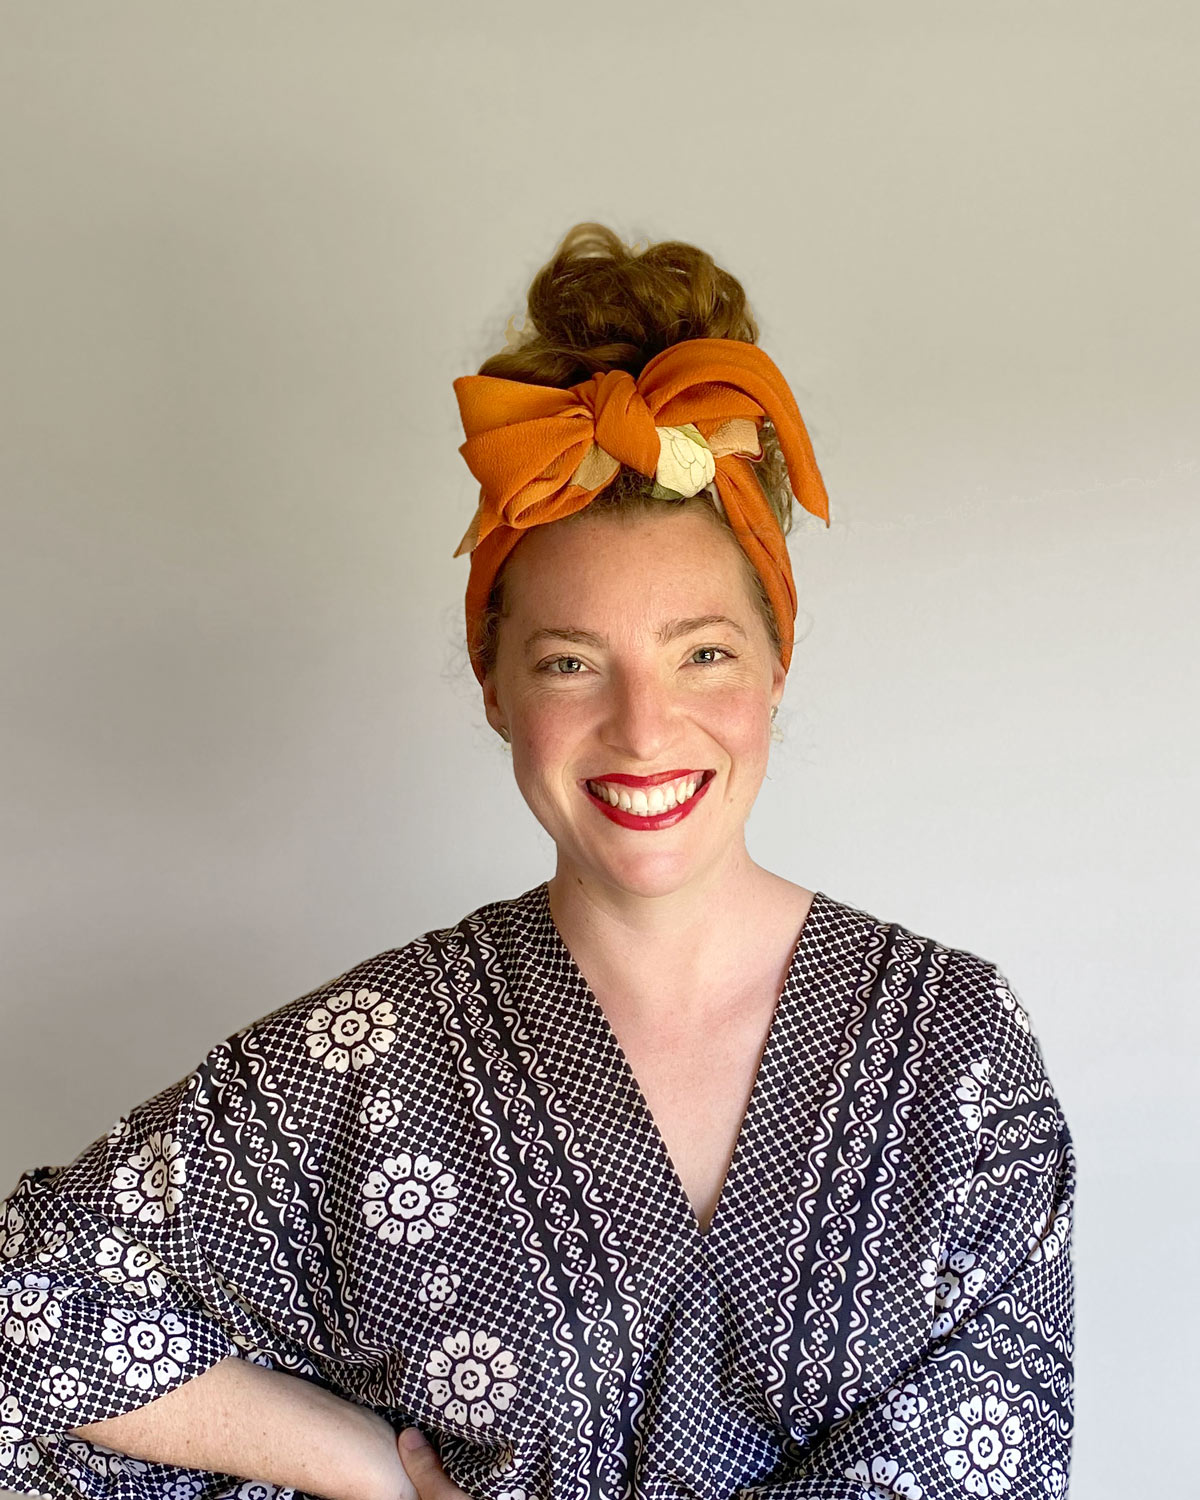 Portrait photo of Candice, wearing an orange scarf, red lipstick and black and white patterned dress with big sleeves